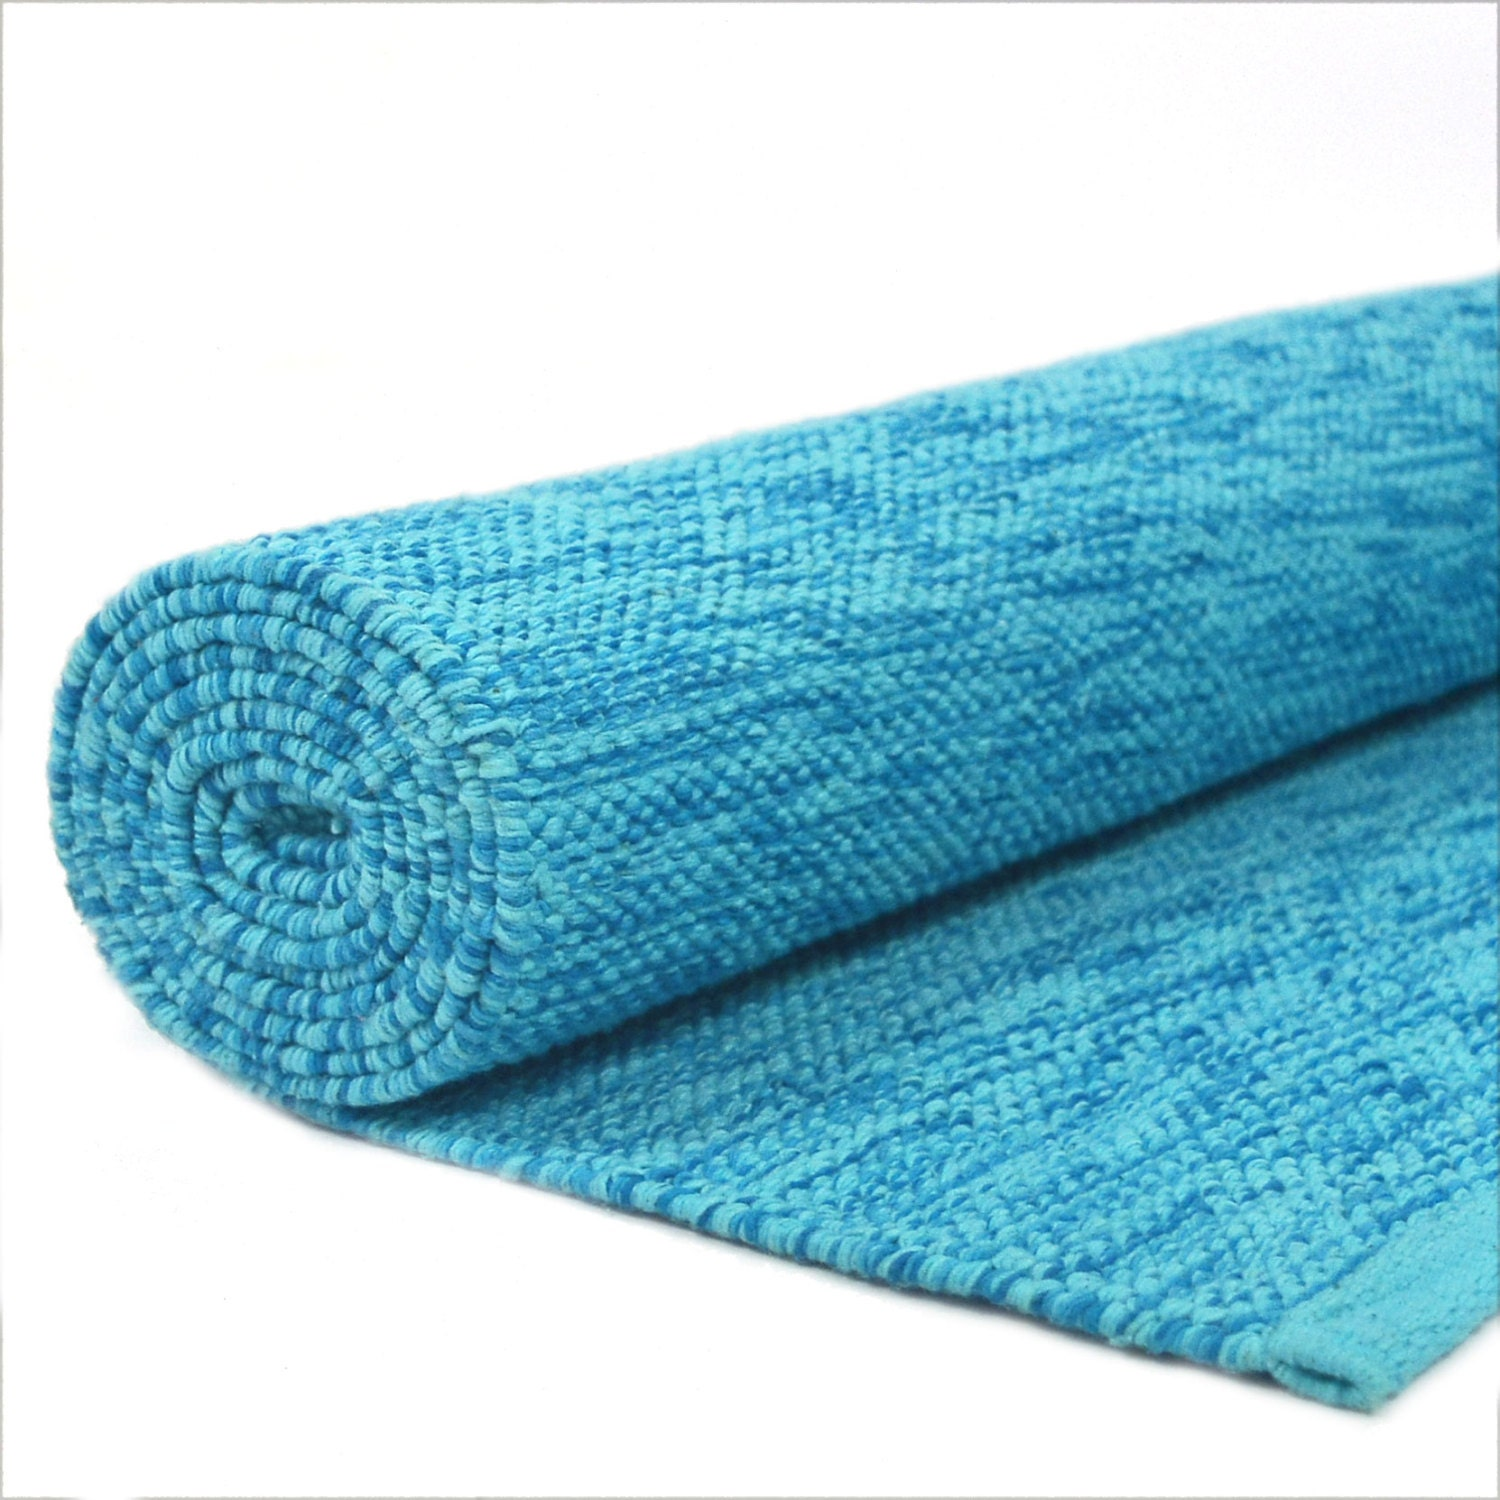 Cotton Yoga Mat Handwoven Blue Pacific Waters Meditation Mat